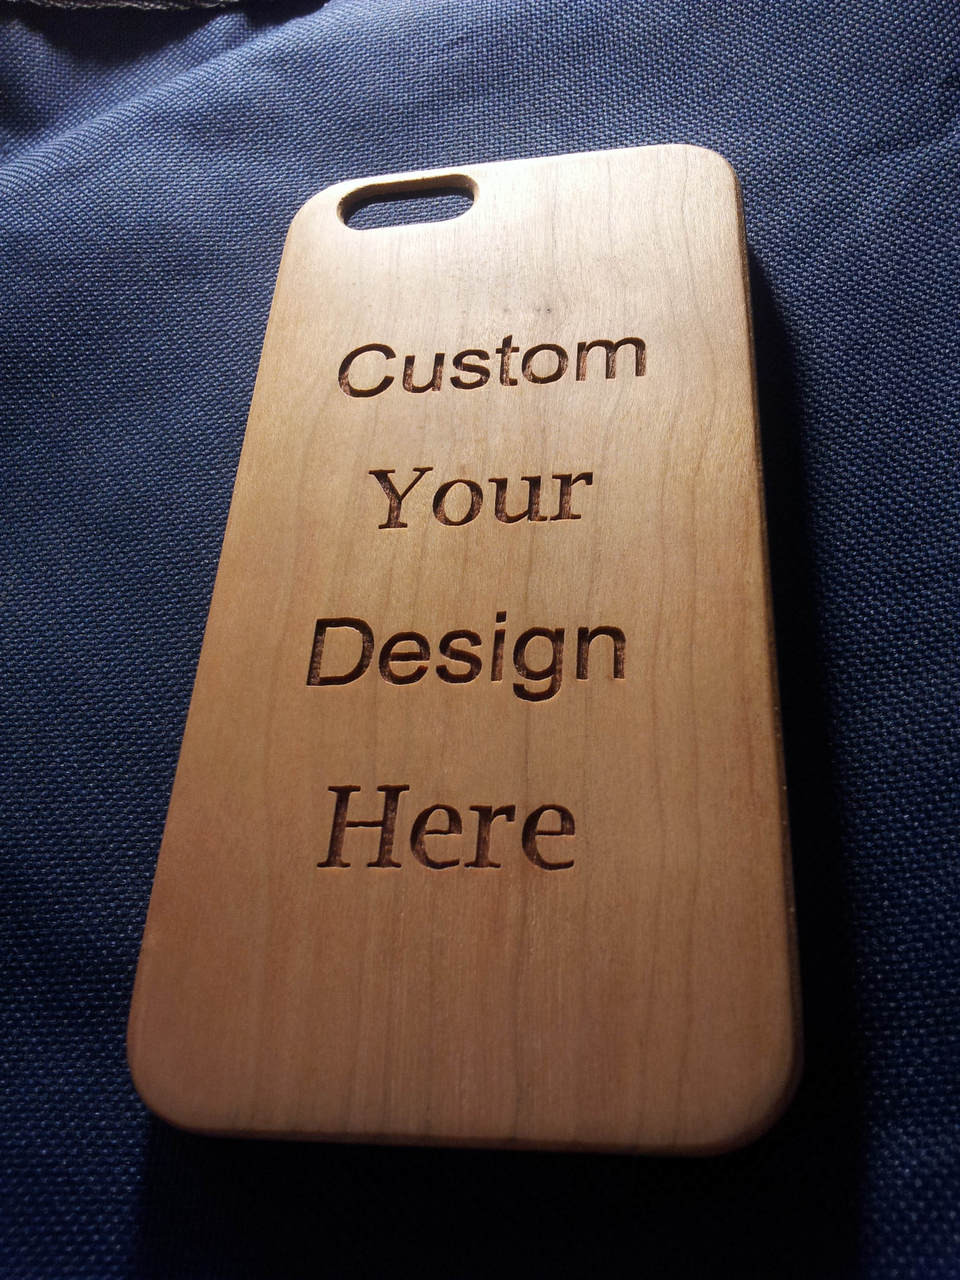 finest selection 6c808 fd781 Laser Engraved Wooden Phone Case Personalised Gift - iPhone 5 5s 6 7 plus  Samsung s5 s6